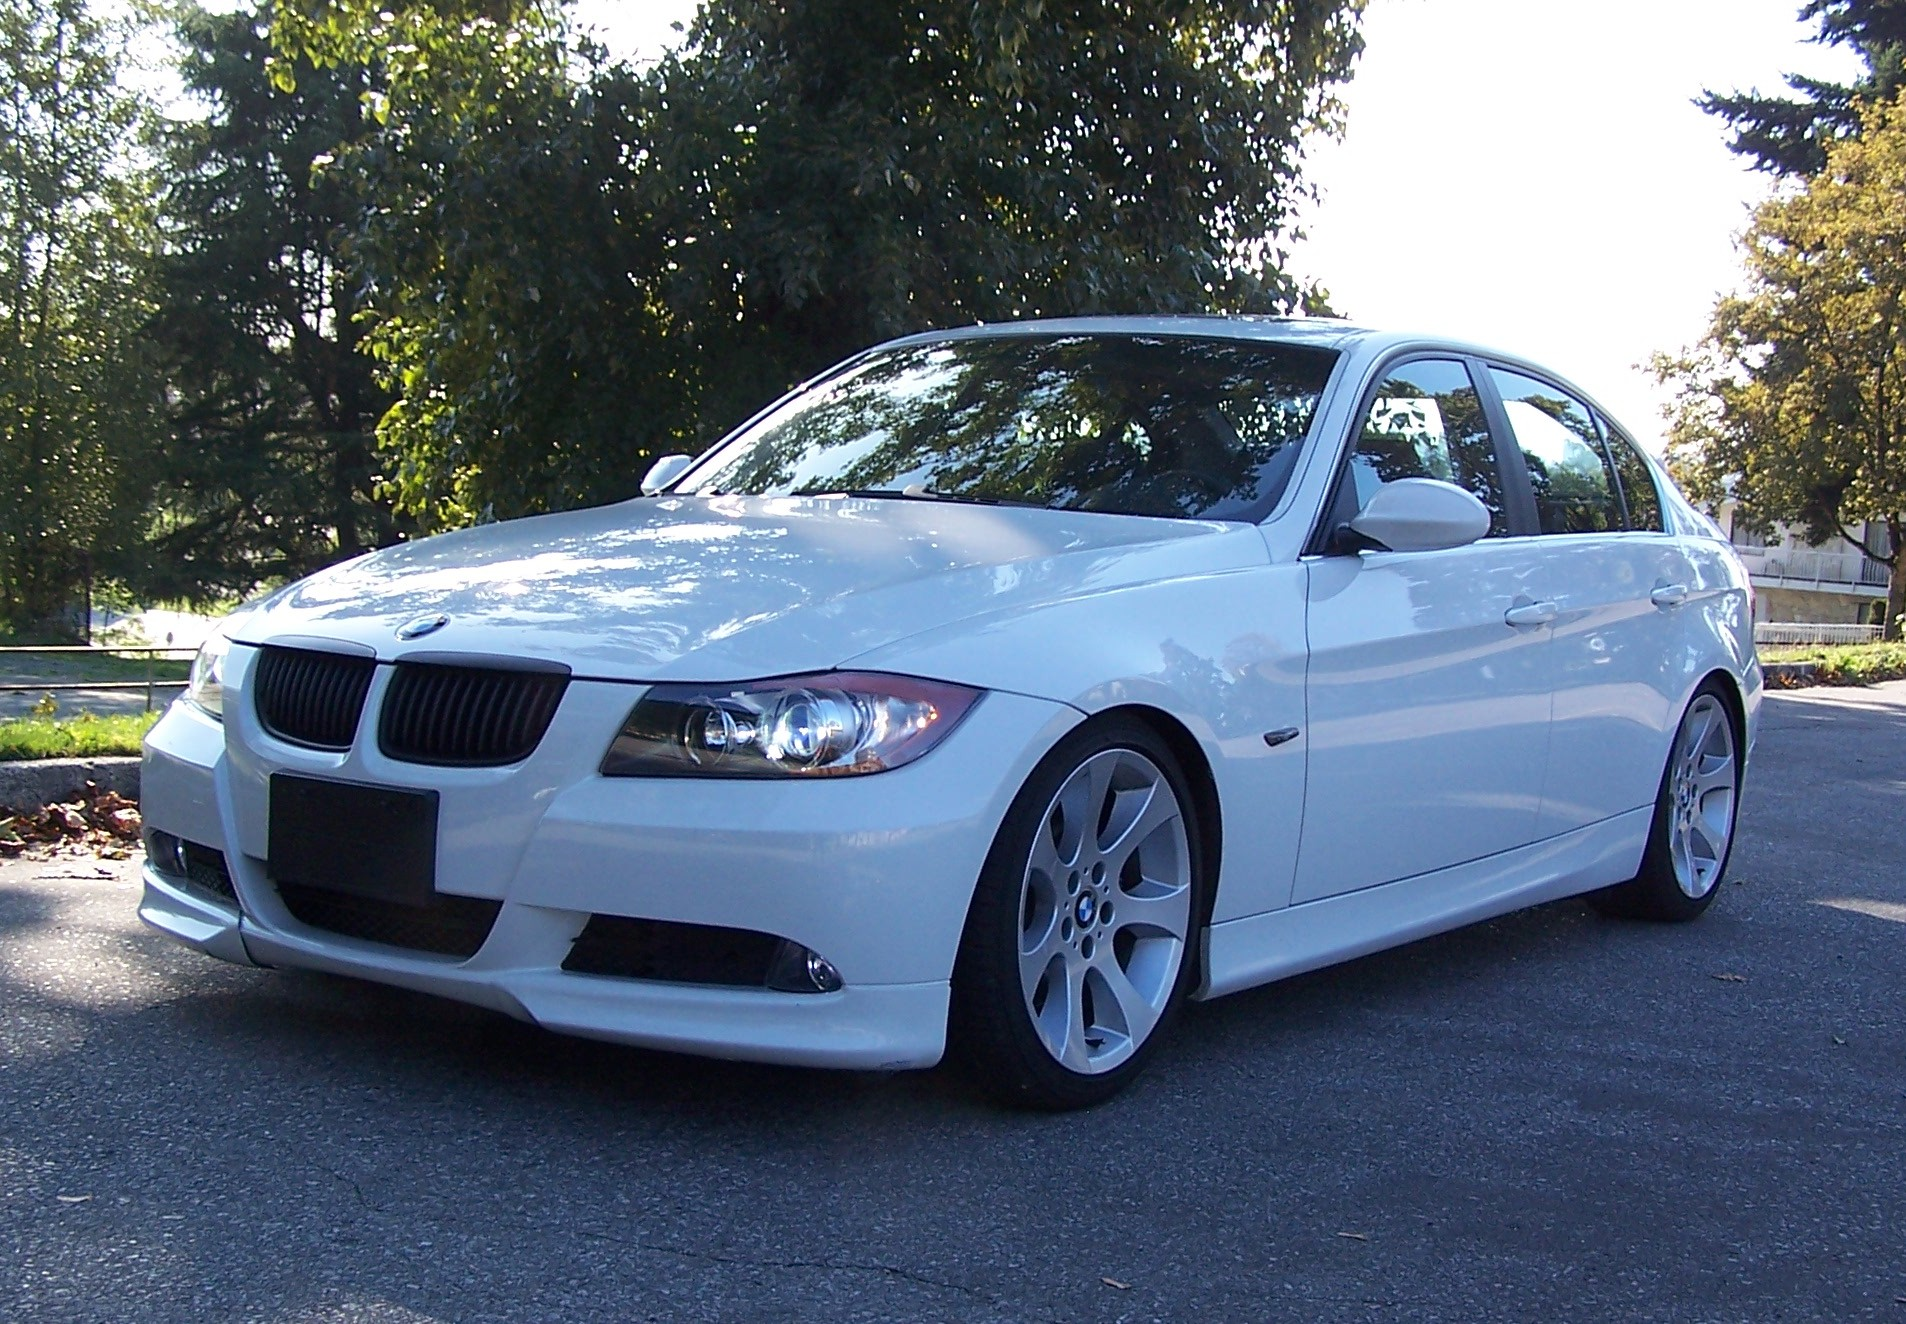 Bmw 330i 2011 Review Amazing Pictures And Images Look